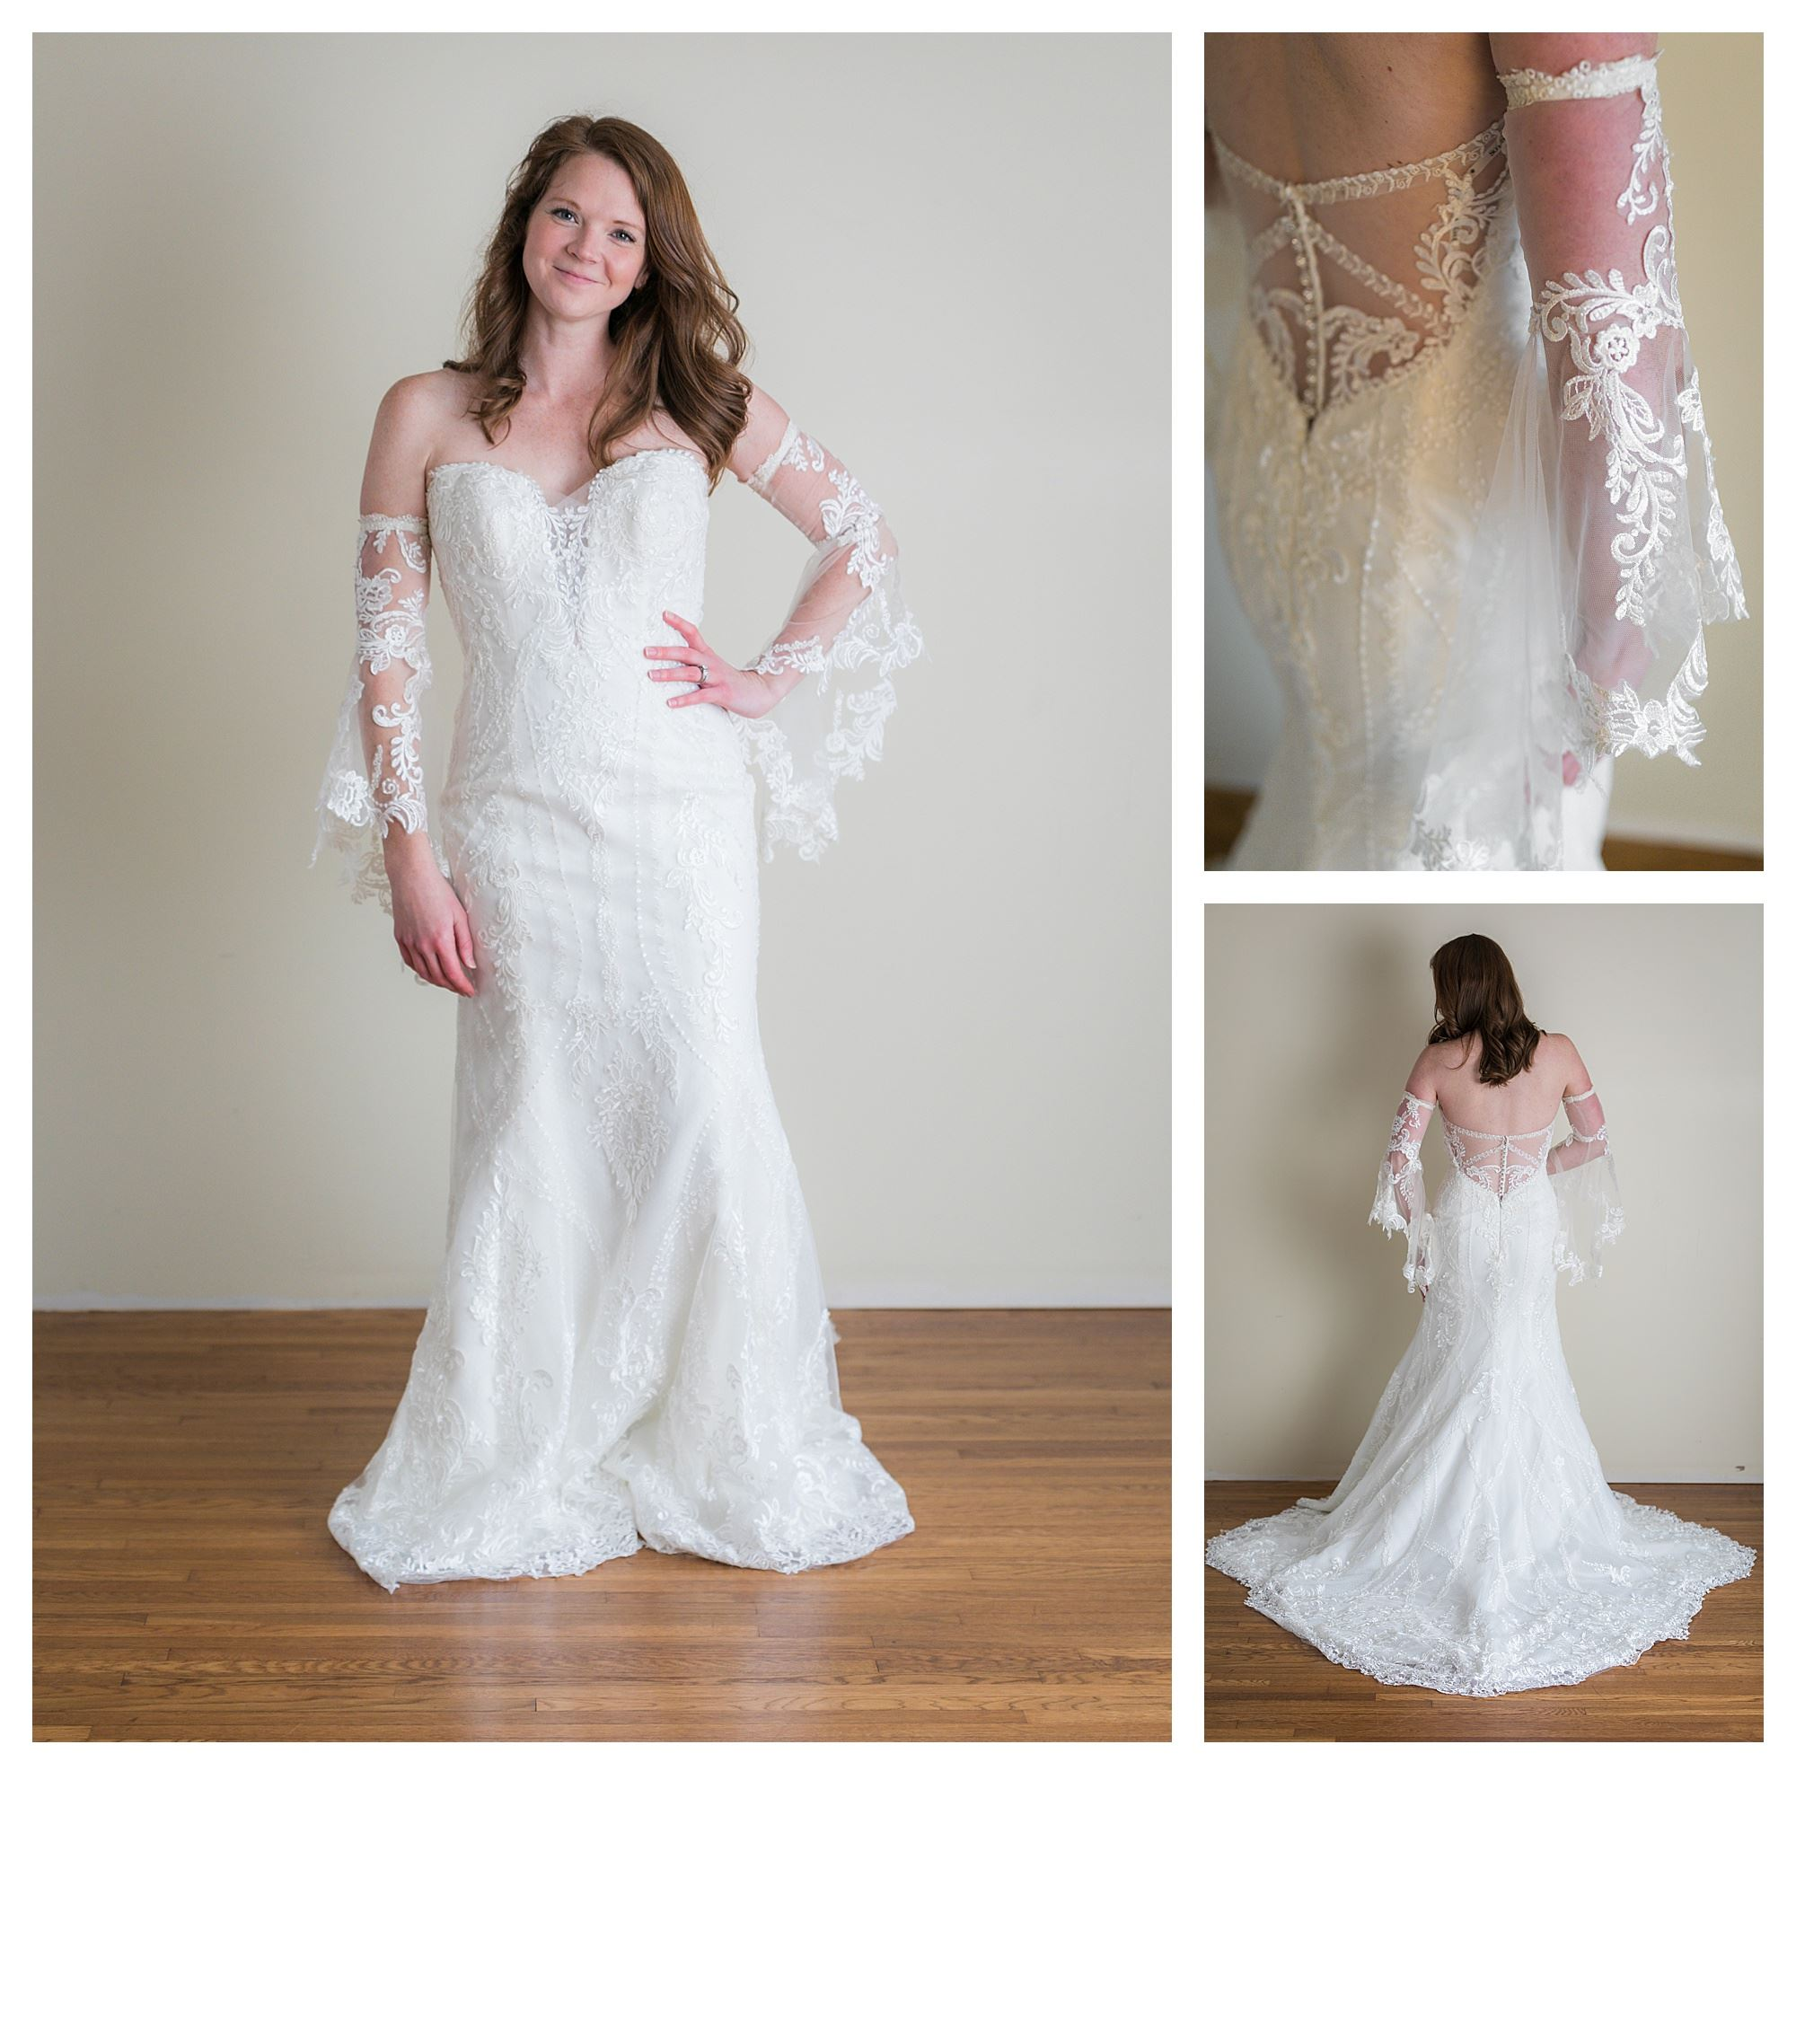 Sandra - Size 8 - Ivory - Originally priced $2199 - Sample box price $1499